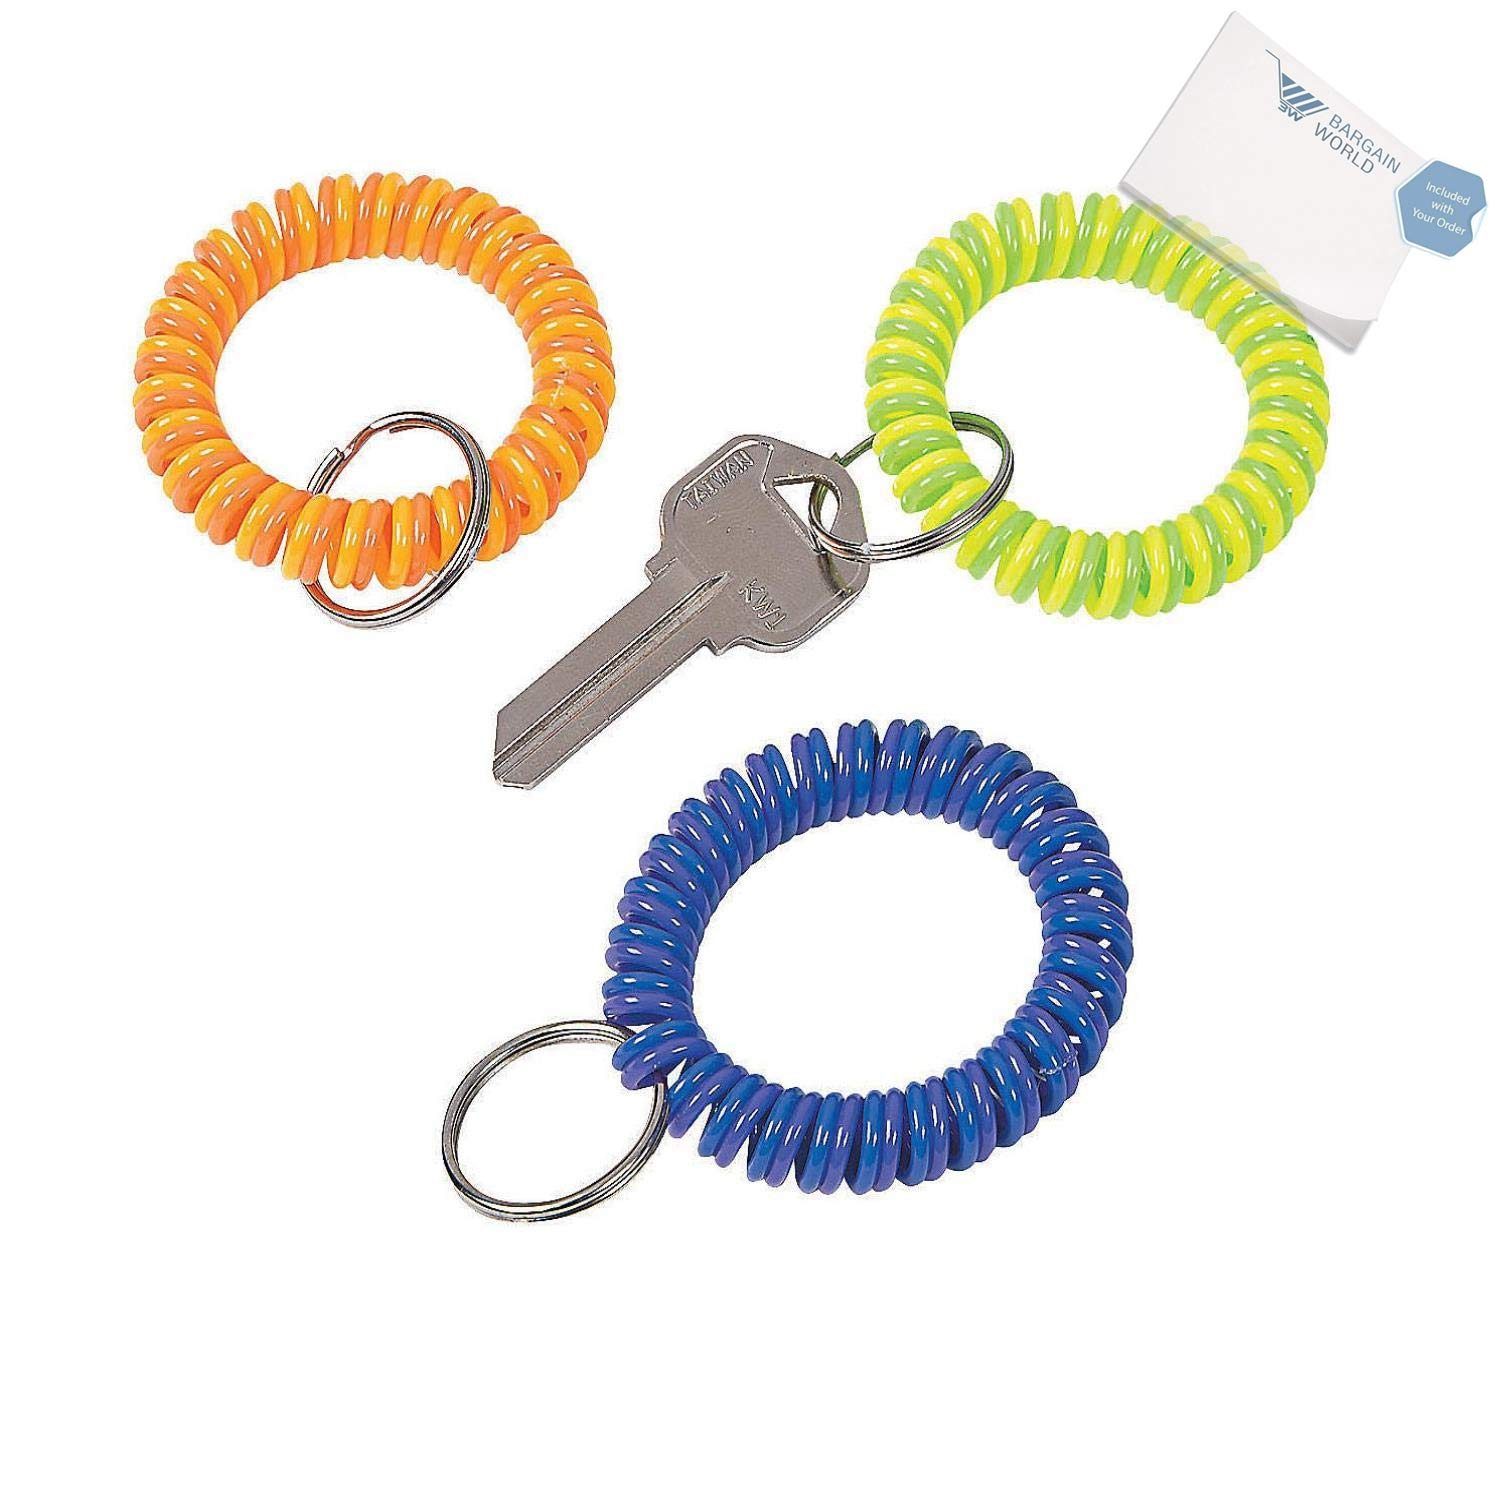 Bargain World Neon Coil Keychains (With Sticky Notes)